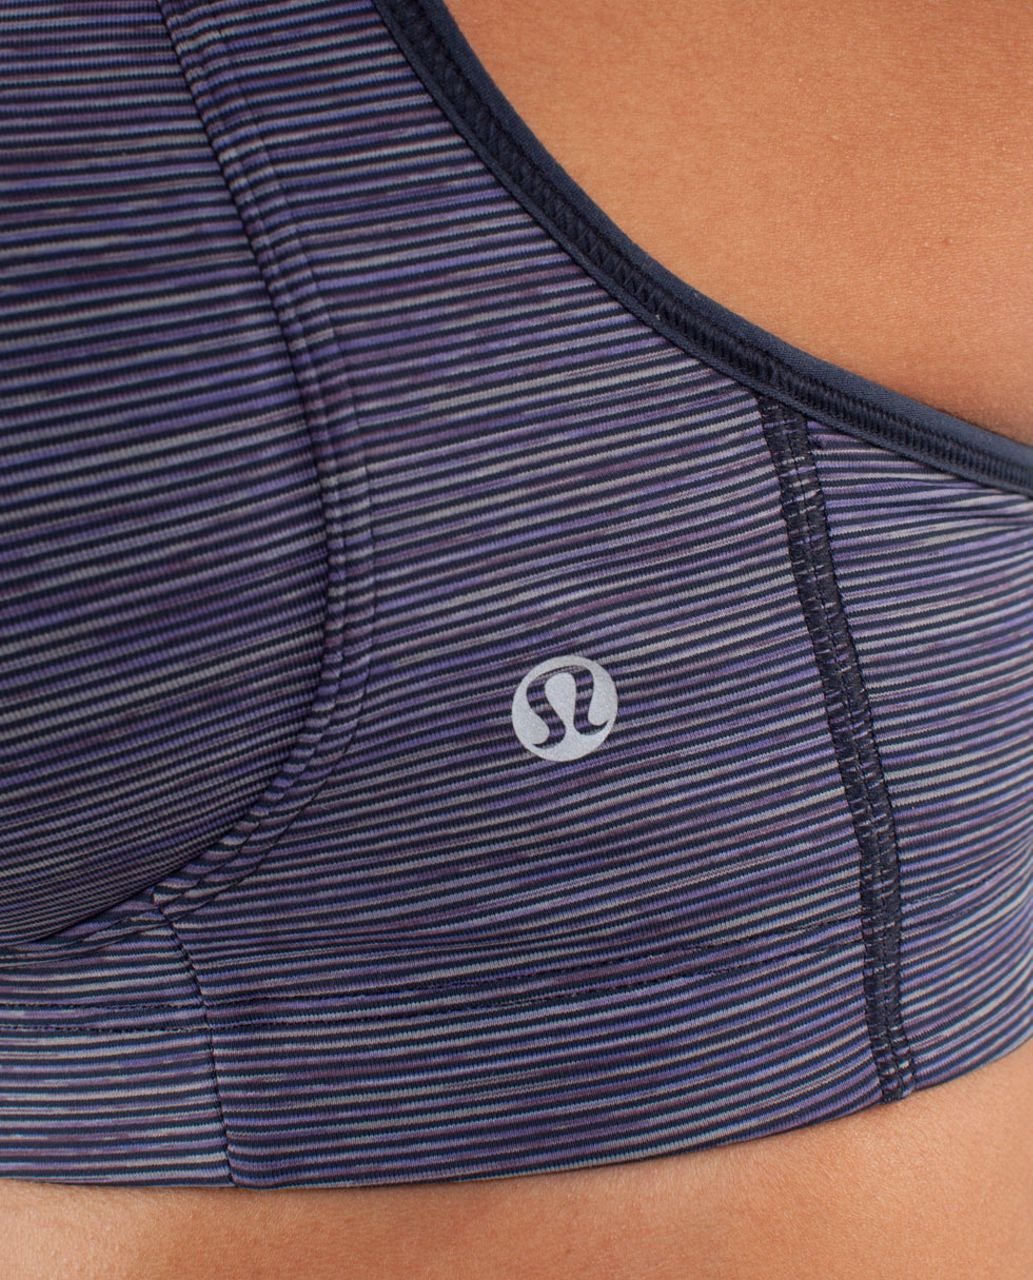 Lululemon Ta Ta Tamer II - Wee Are From Space Deep Indigo Multi